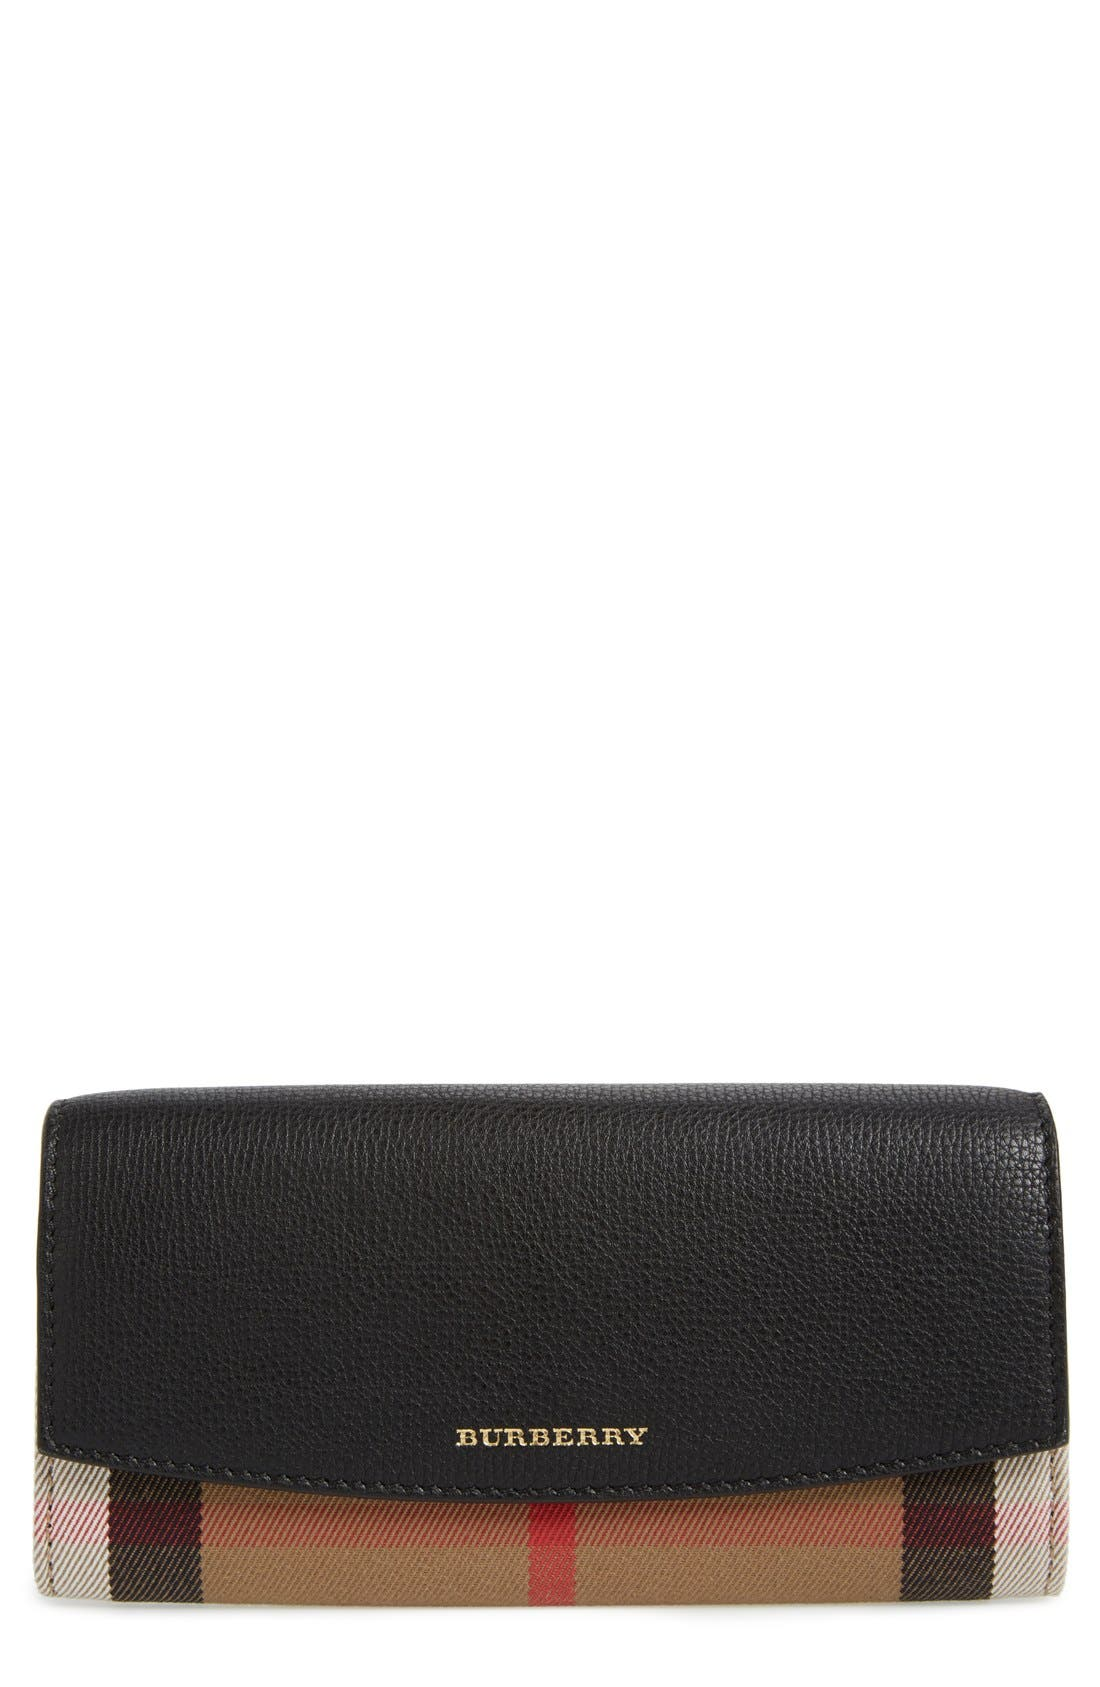 Alternate Image 1 Selected - Burberry 'Porter' Continental Wallet